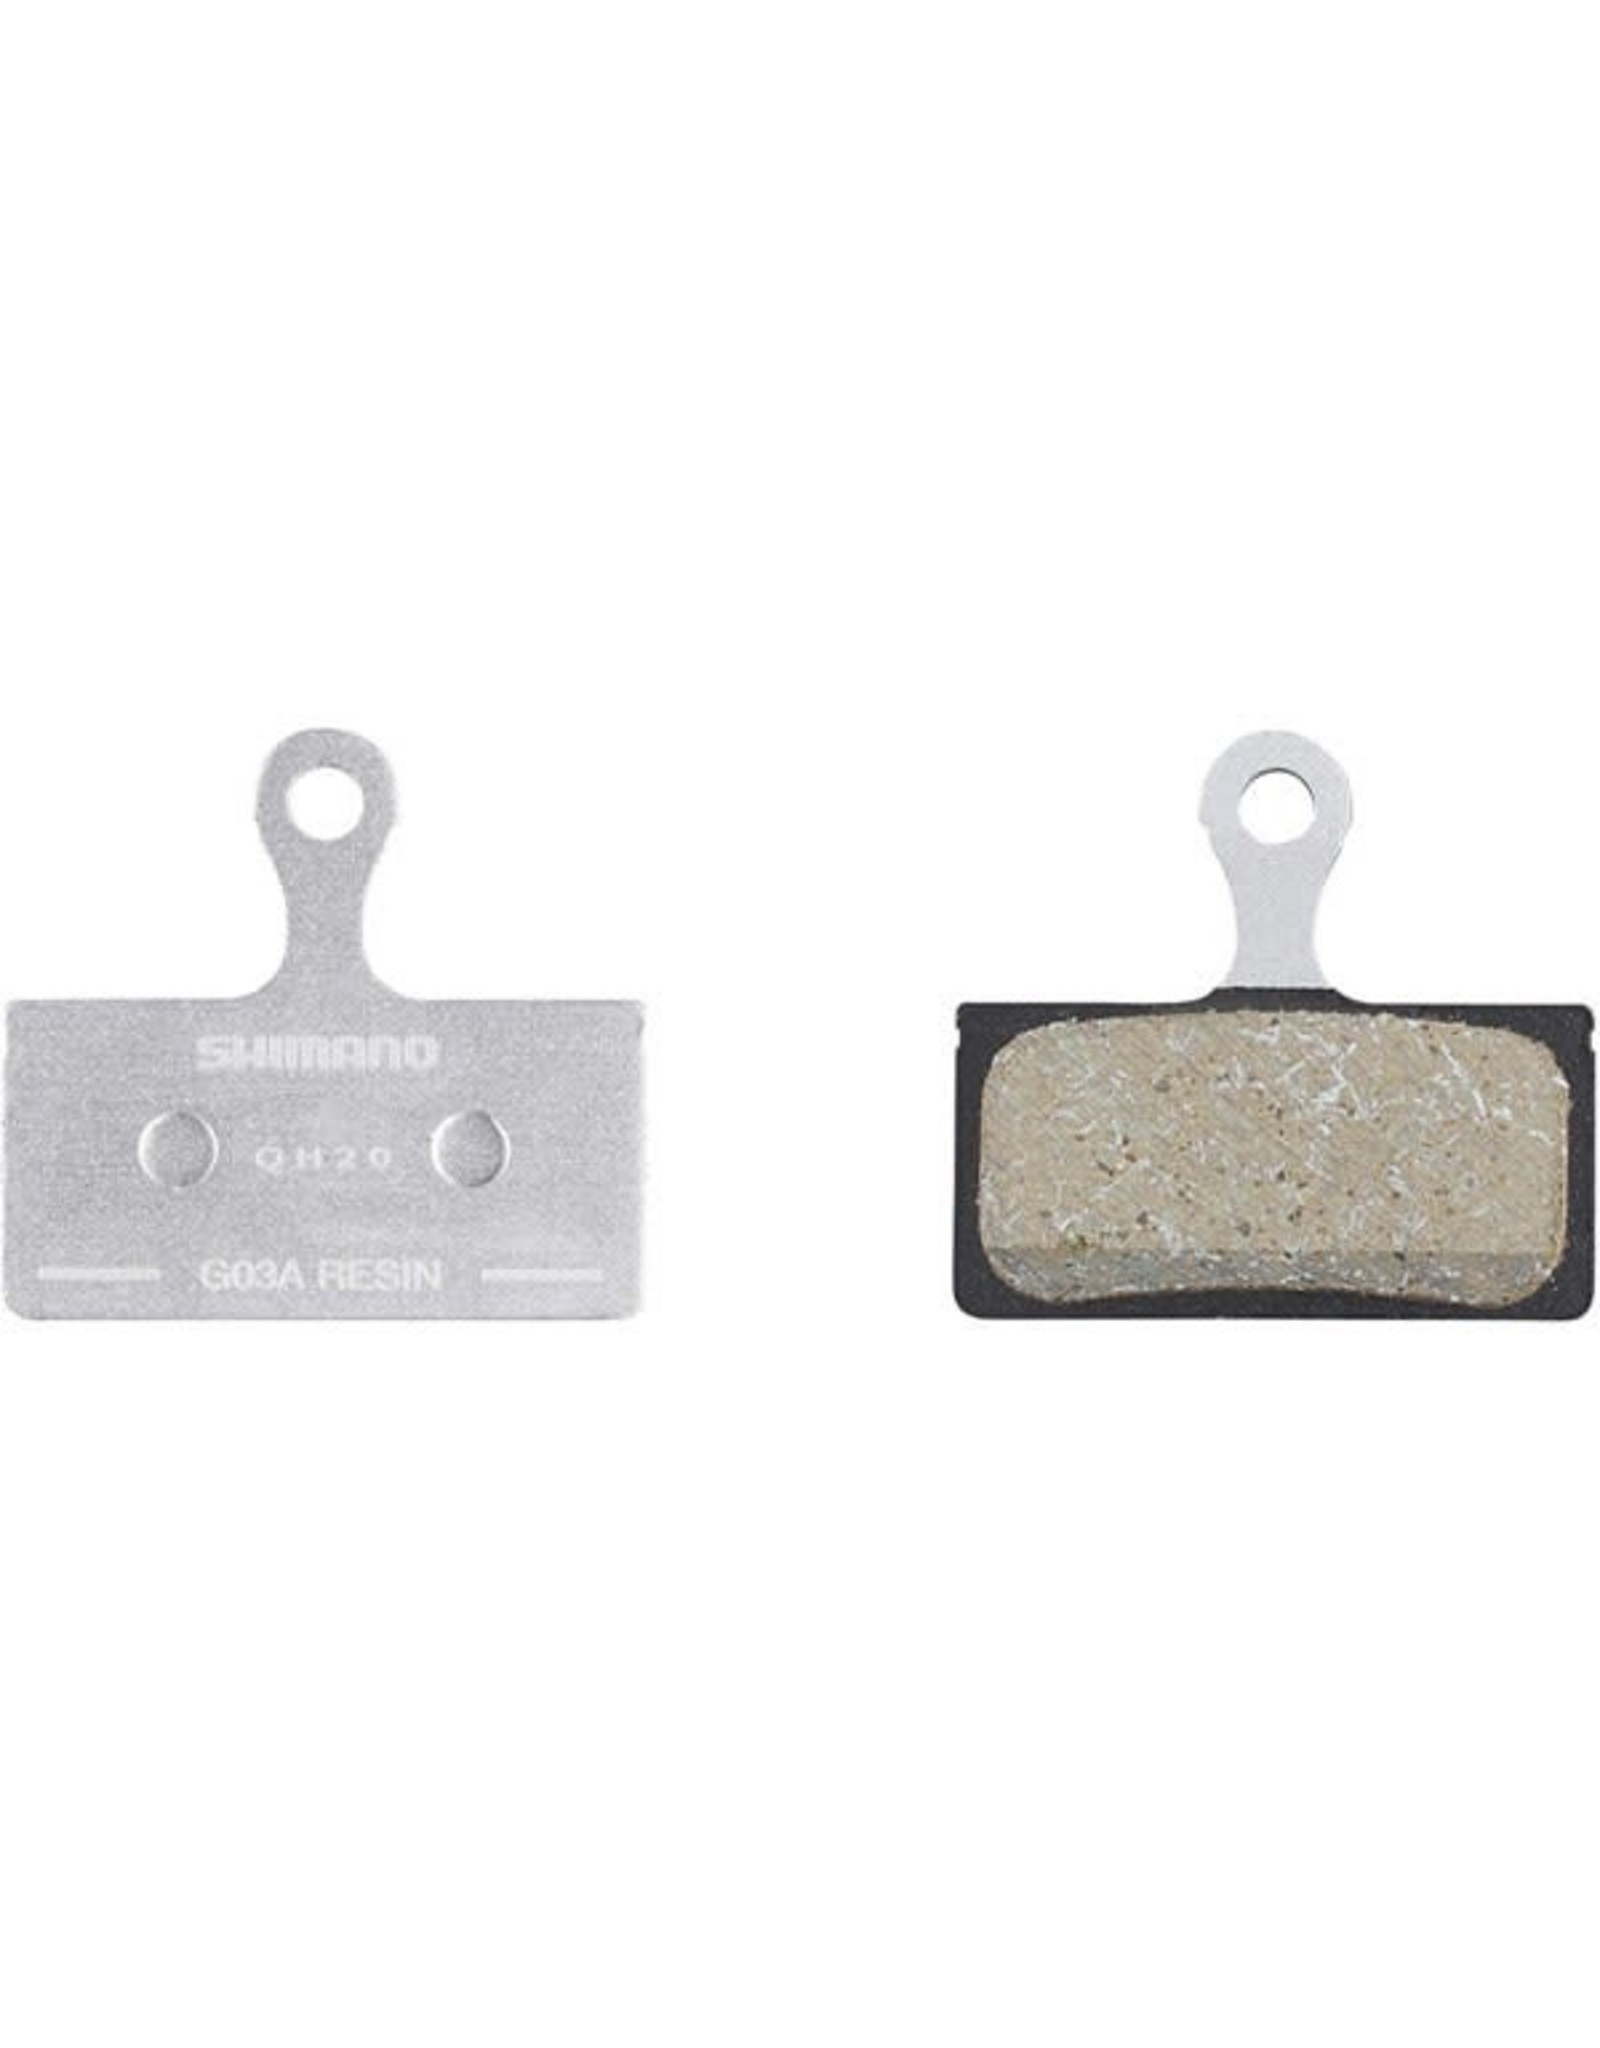 Shimano Brake Pads Disc GO3A Resin